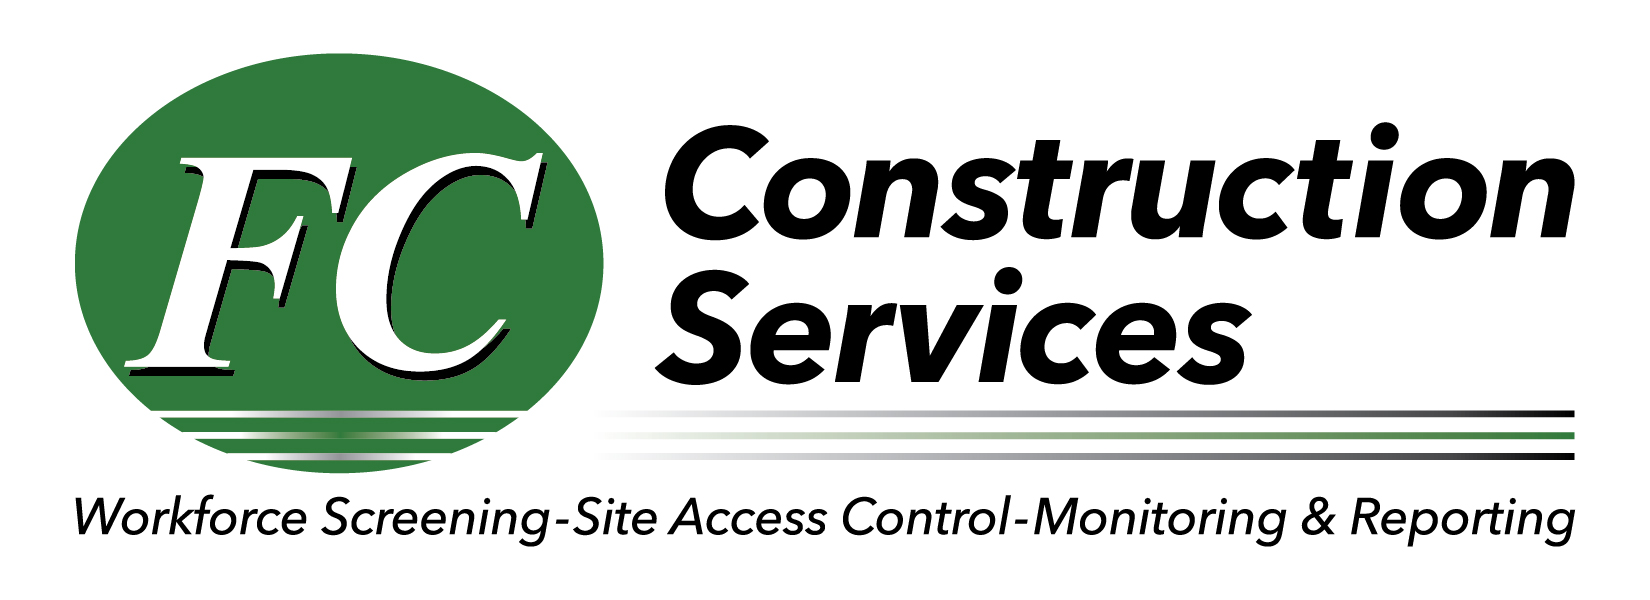 Economic Outlook - FC Construction Services logo